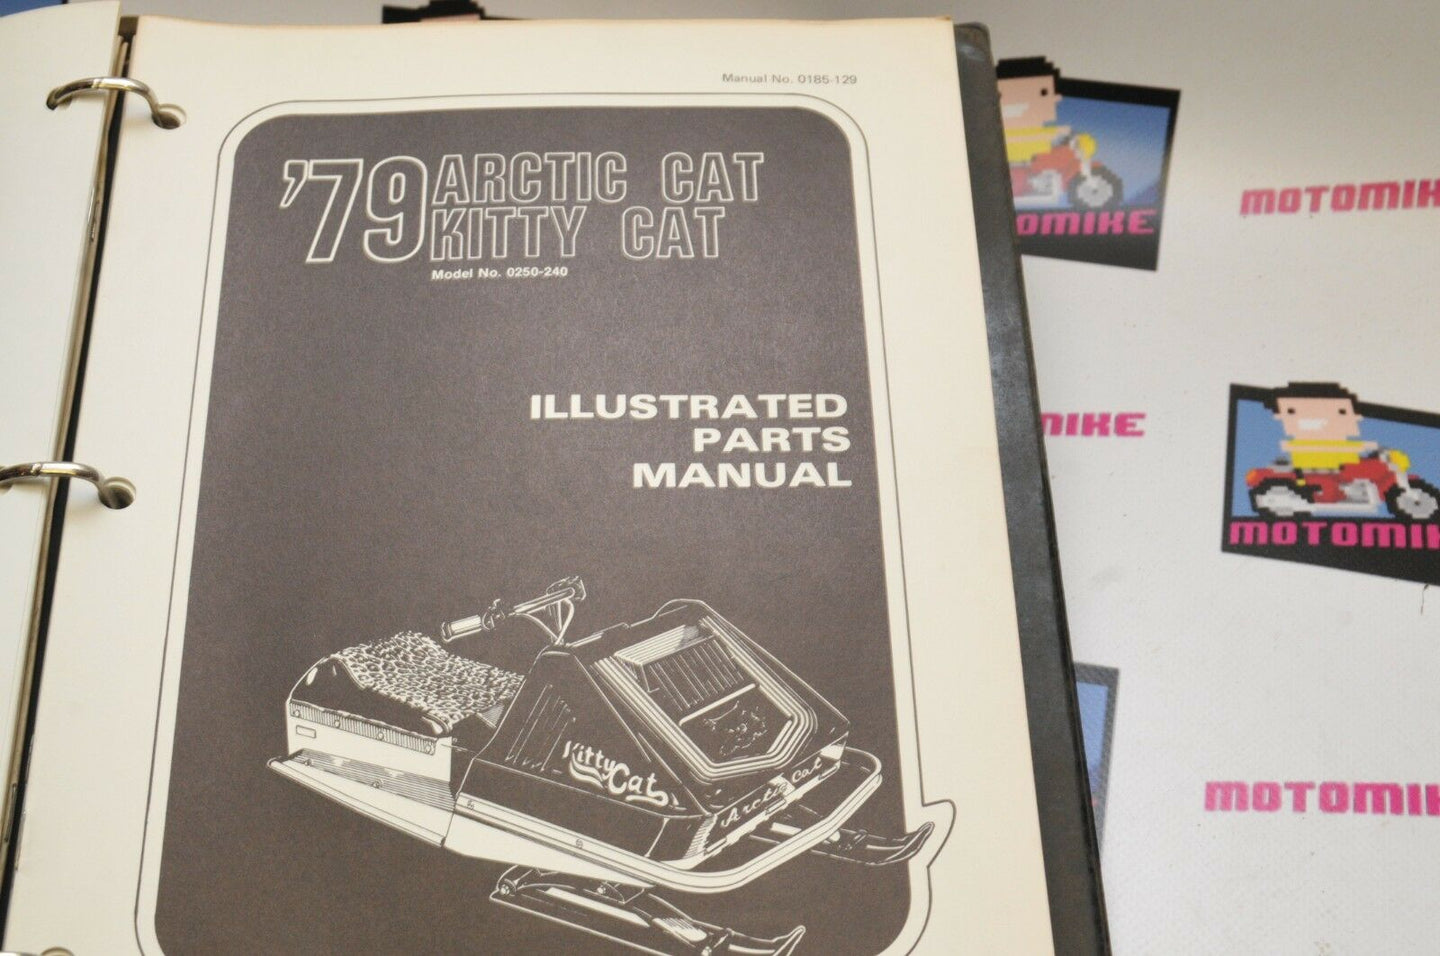 Genuine ARCTIC CAT Factory ILLUSTRATED PARTS MANUAL - 1979 KITTY CAT  0185-129